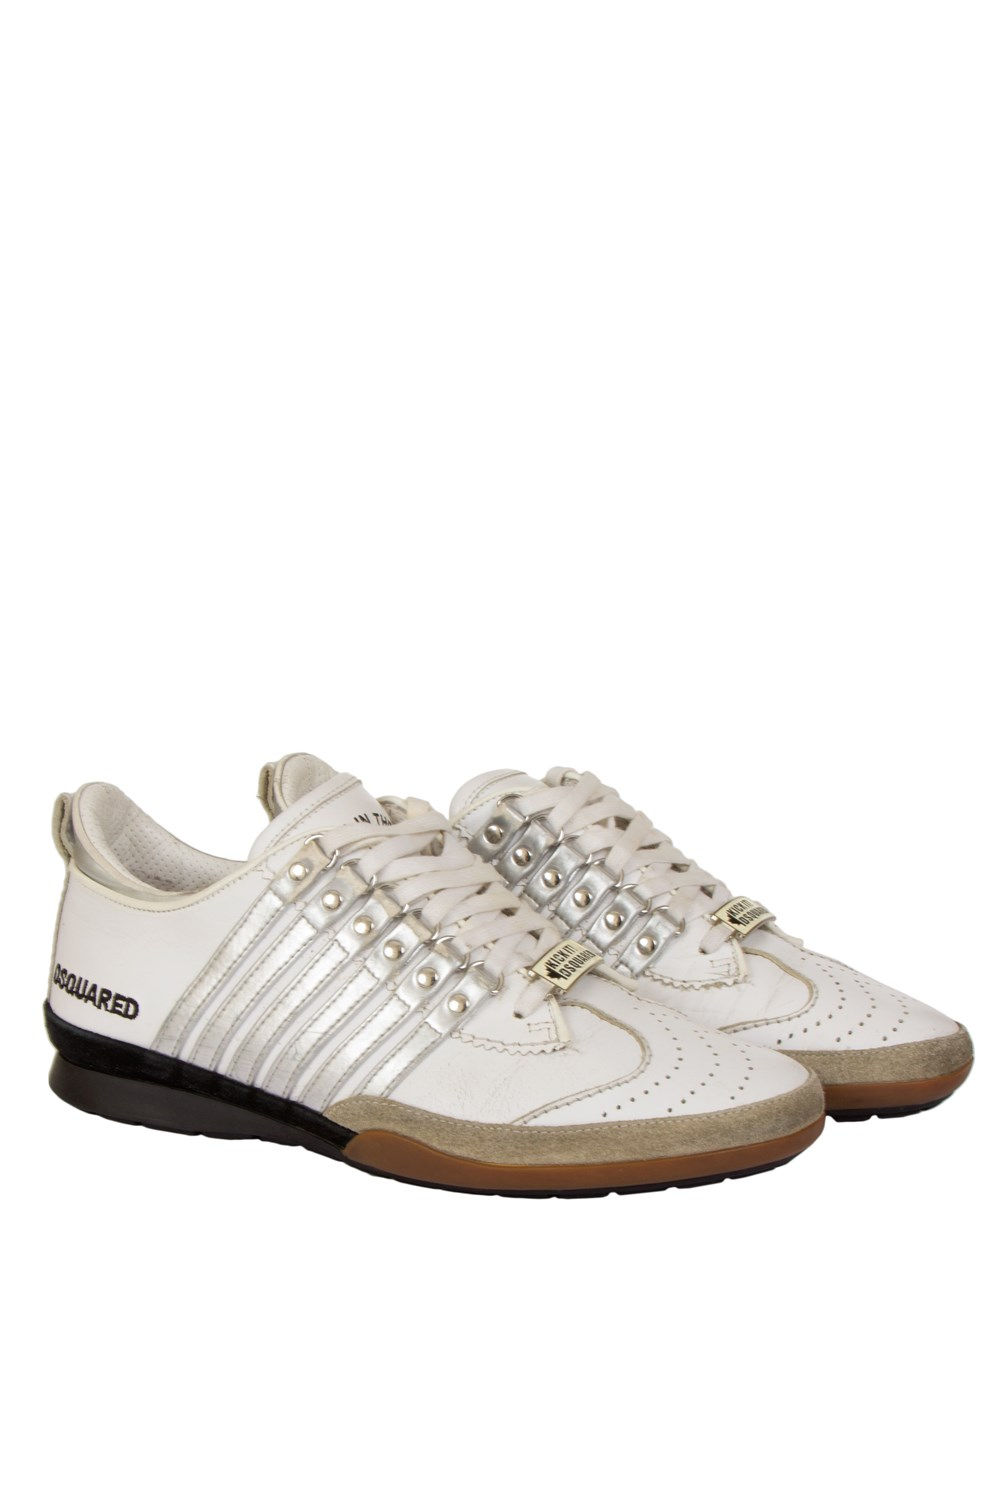 1cdde7f01a1a Dsquared2 White Leather Sneakers with Silver Stripes ...